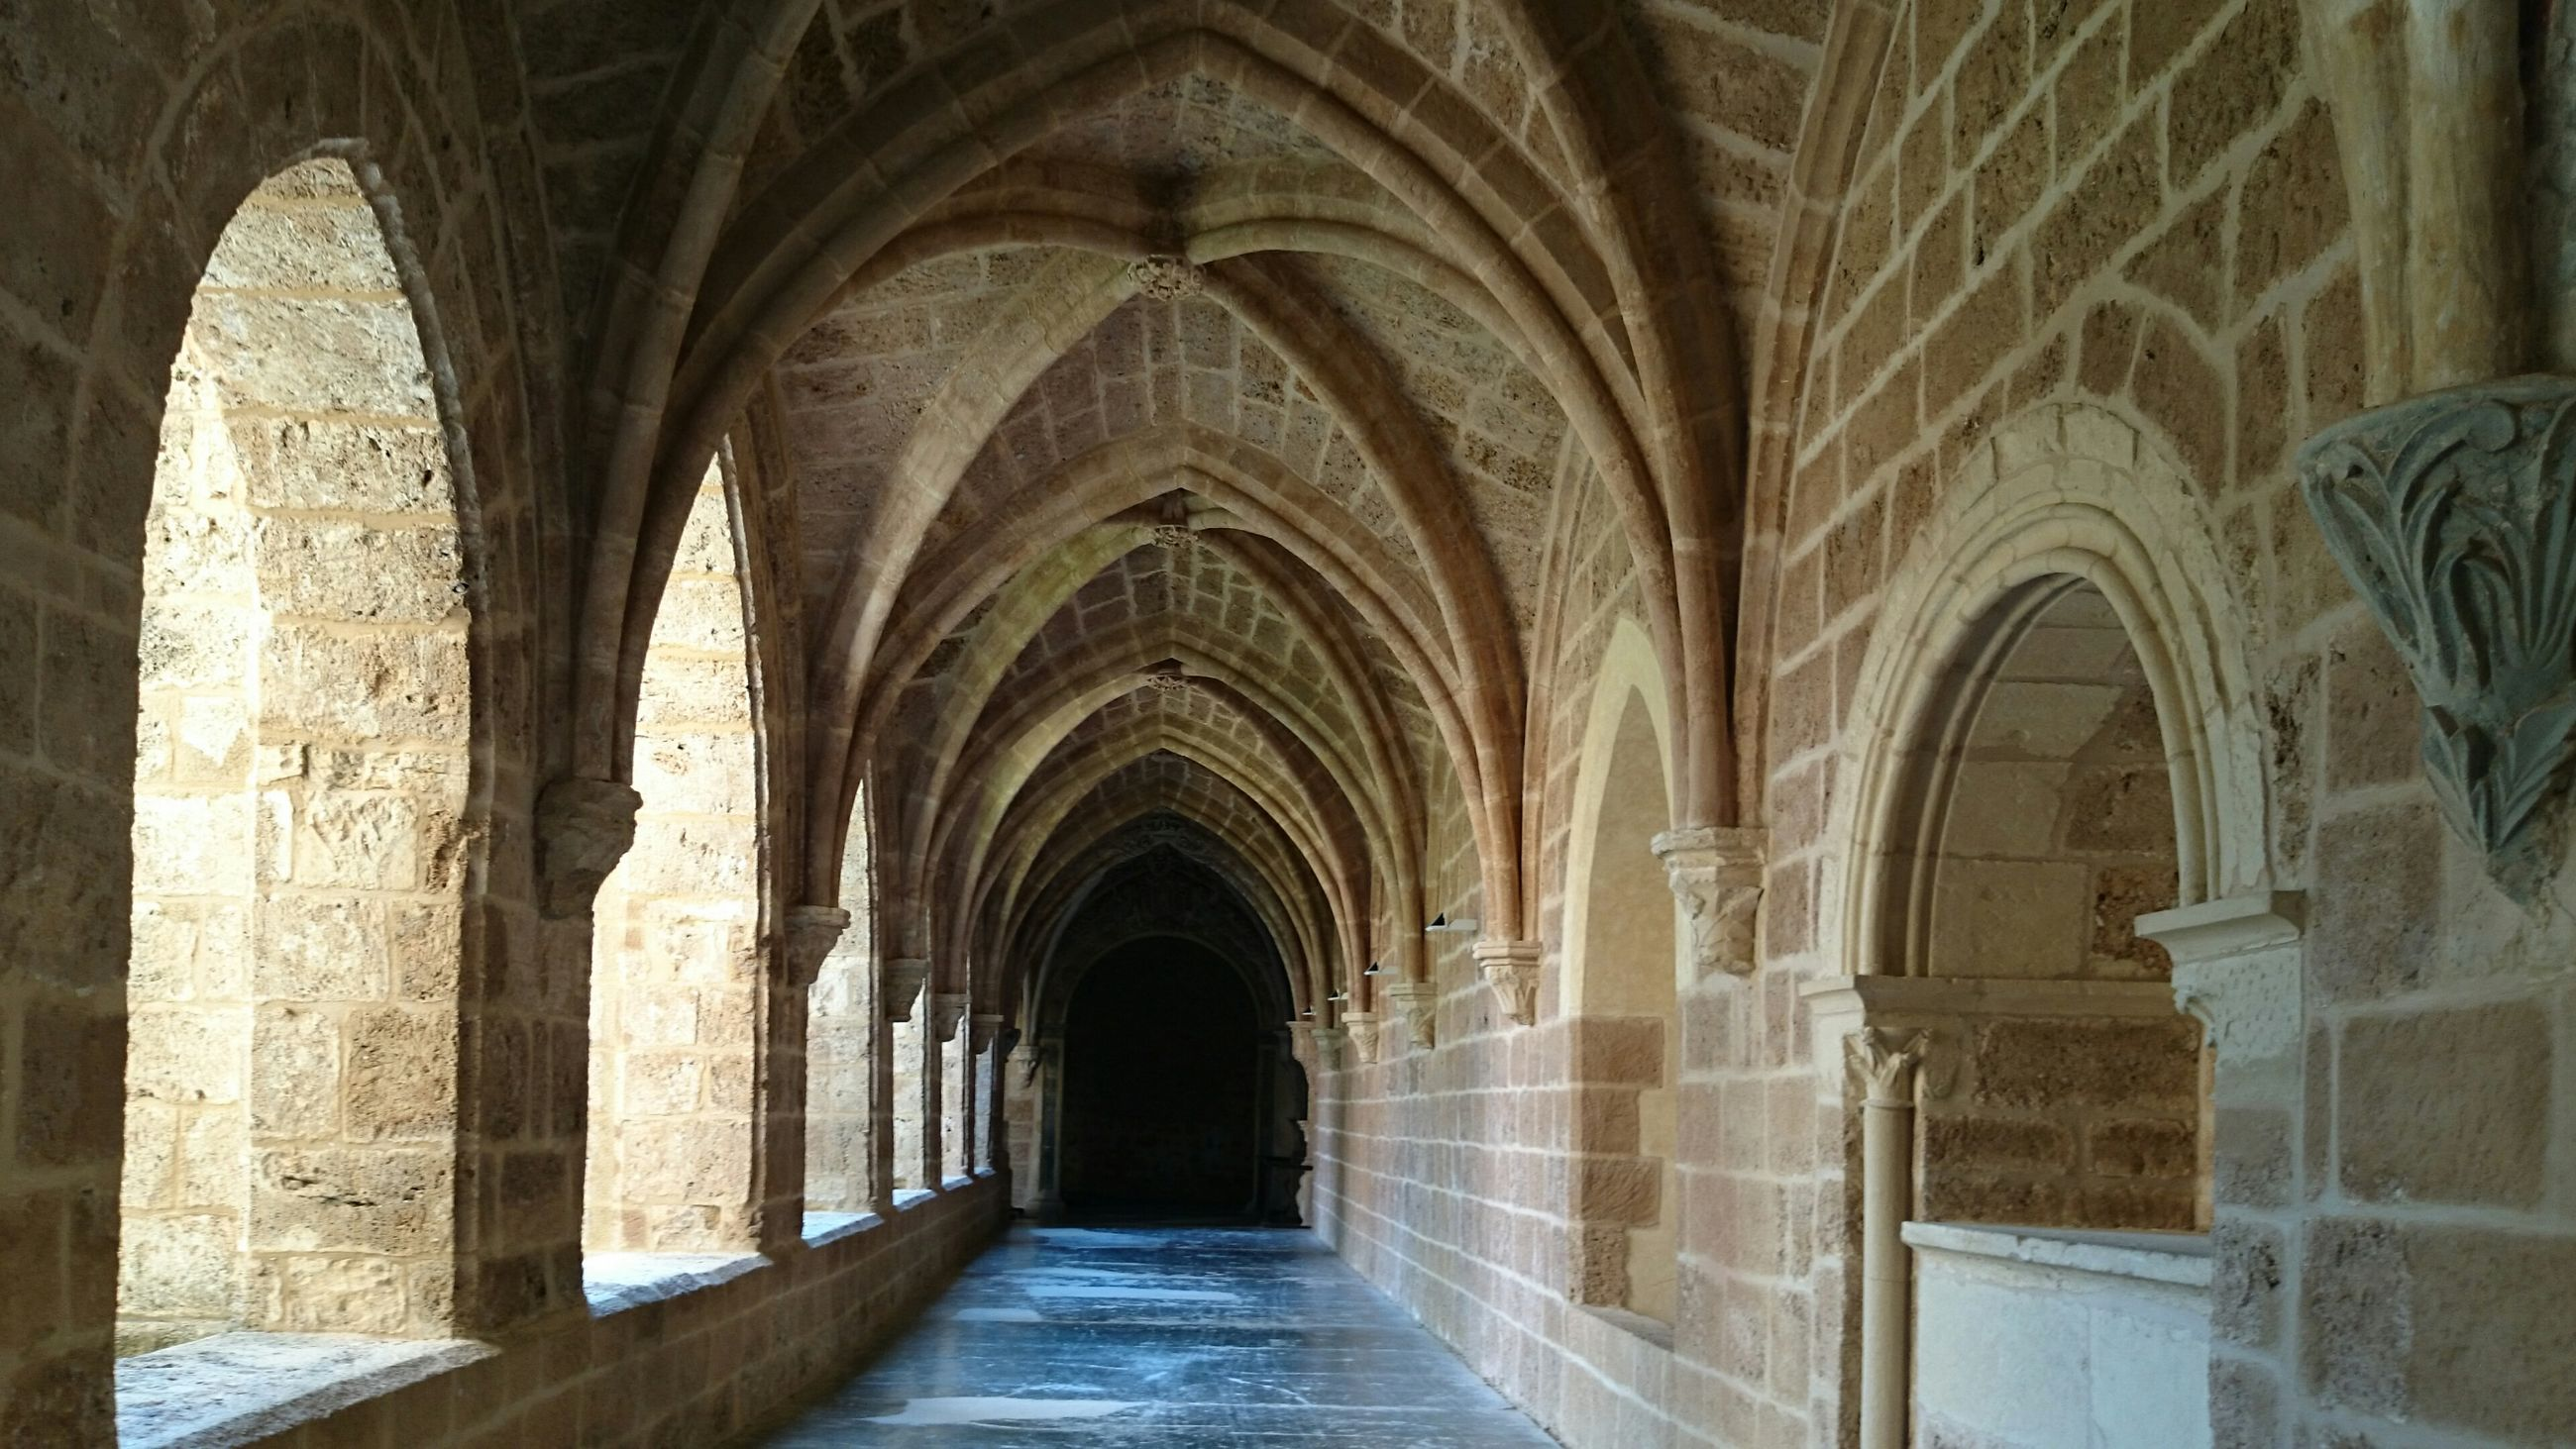 arch, indoors, architecture, built structure, the way forward, corridor, religion, history, place of worship, archway, diminishing perspective, church, interior, spirituality, architectural column, colonnade, ceiling, arched, old